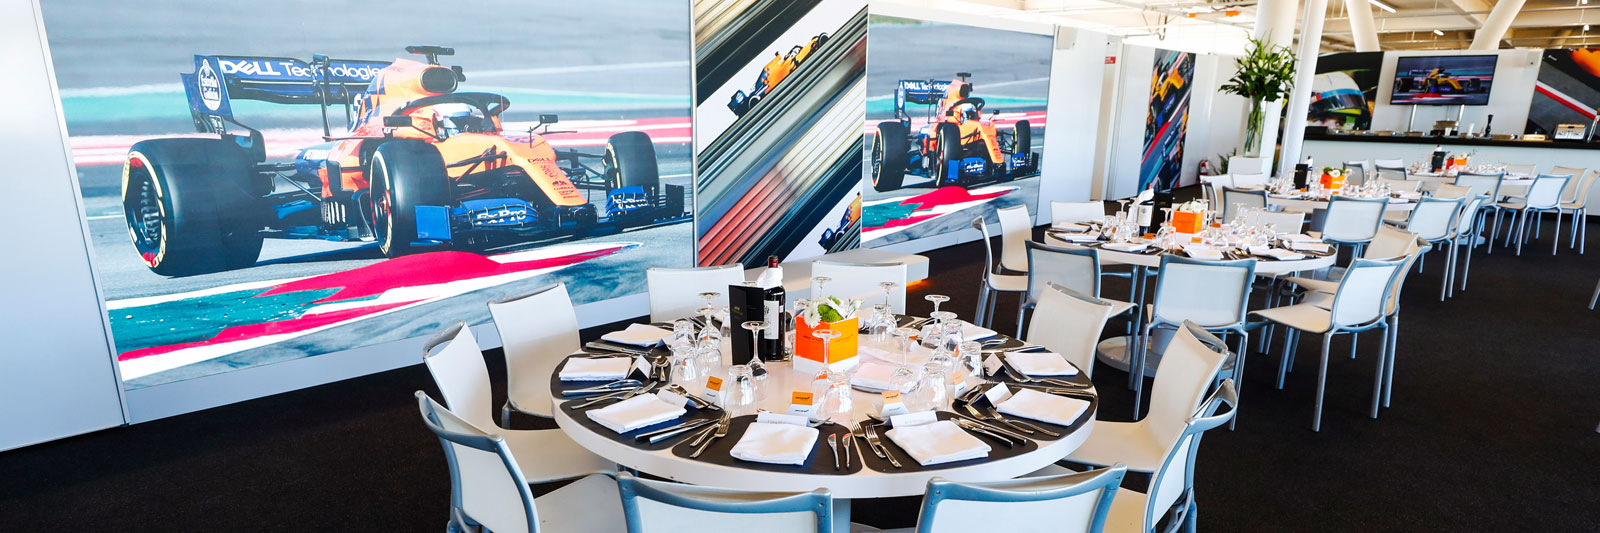 McLaren Paddock Club Tickets from Grand Prix Tours